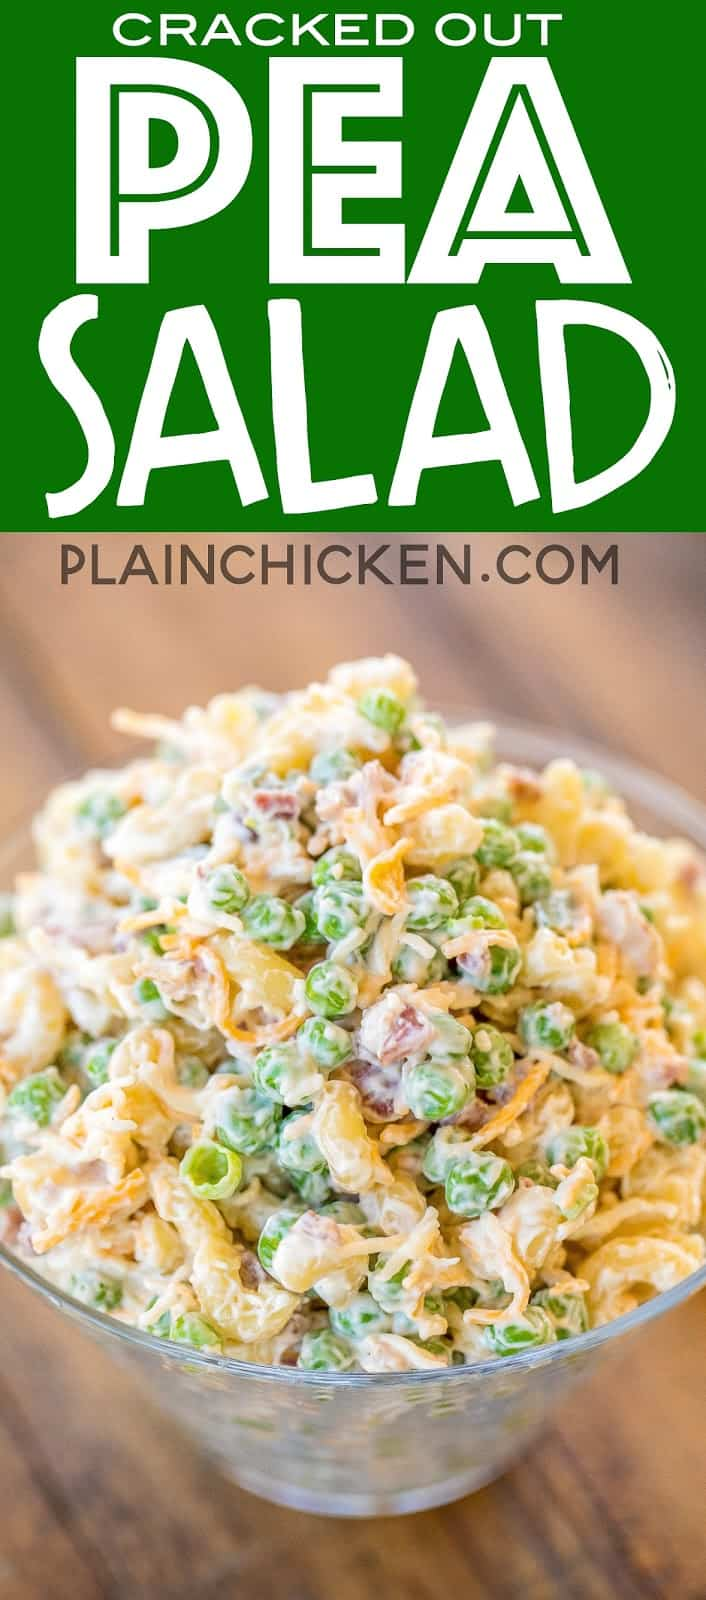 Cracked Out Pea Salad - Macaroni and green peas tossed in mayonnaise, cheddar, bacon and ranch. Seriously delicious!!! Great for potlucks or a side dish with a sandwiches. Great for all your spring and summer cookouts! Can make ahead and refrigerate until ready to serve. It has become our favorite pasta salad recipe!! #pastasalad #sidedish #bacon #ranch